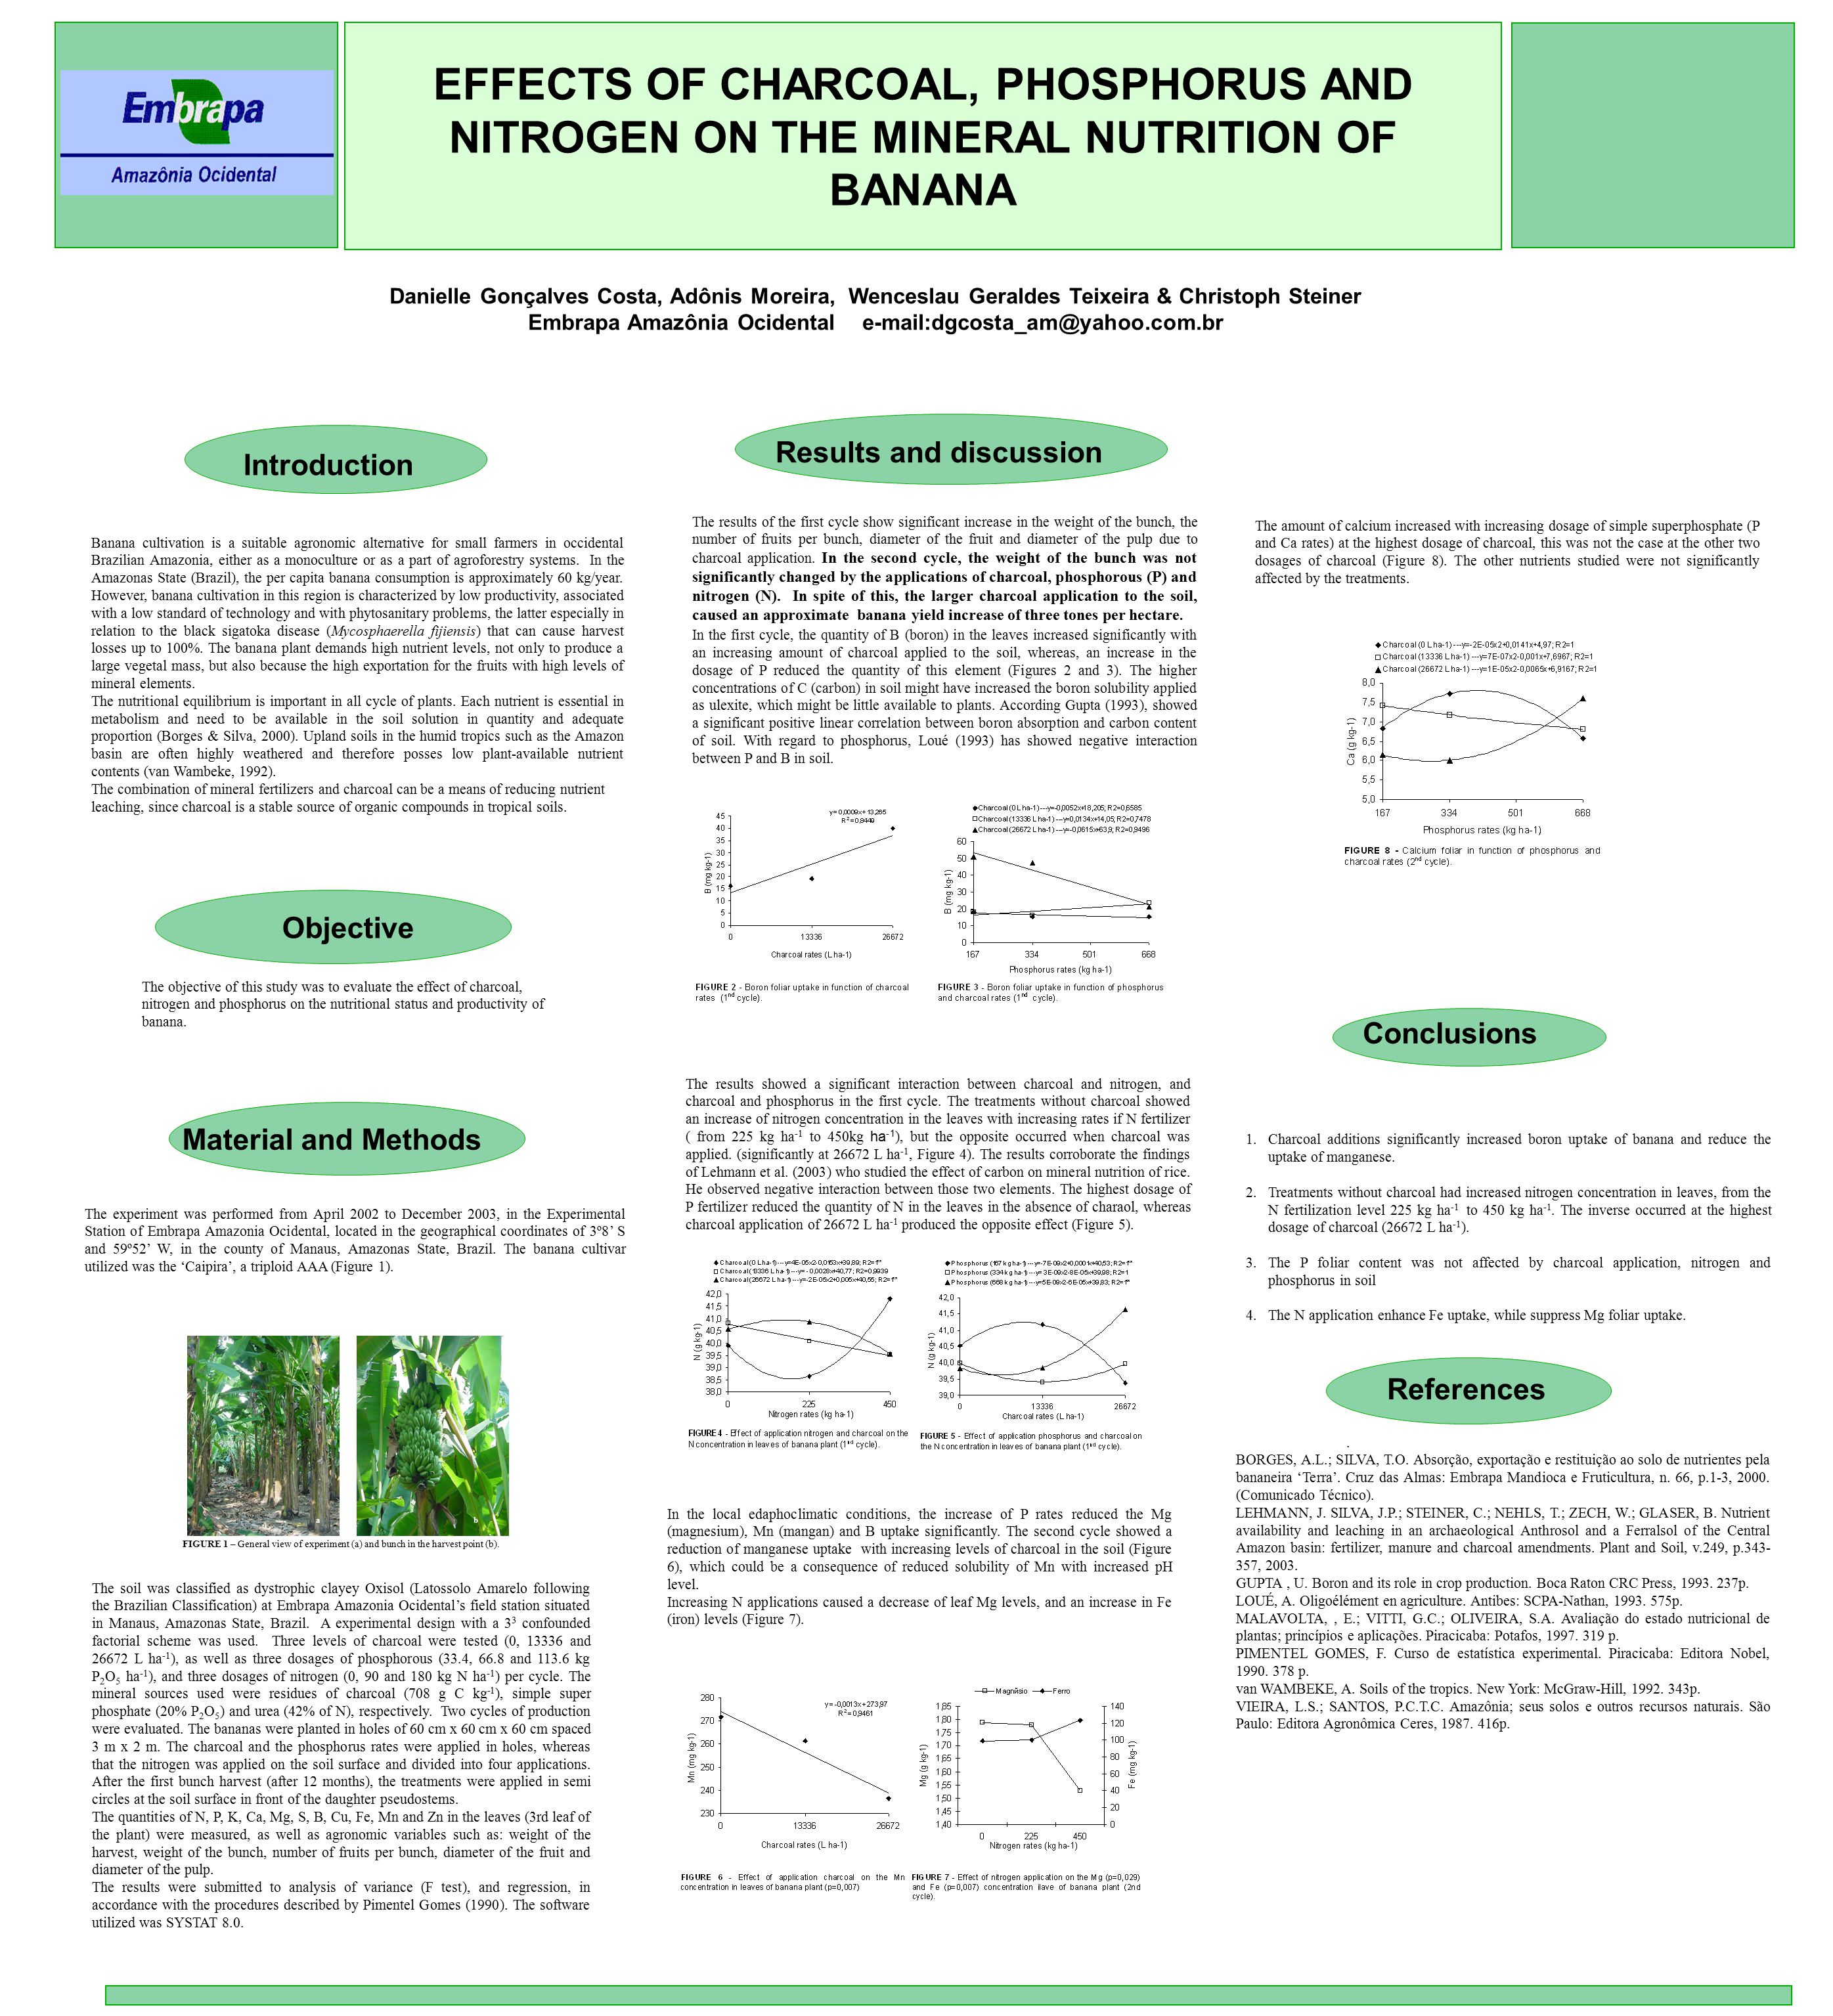 EFFECTS OF CHARCOAL, PHOSPHORUS AND NITROGEN ON THE MINERAL NUTRITION OF BANANA Danielle Gonçalves Costa, Adônis Moreira, Wenceslau Geraldes Teixeira & Christoph Steiner Embrapa Amazônia Ocidental e-mail:dgcosta_am@yahoo.com.br Introduction Banana cultivation is a suitable agronomic alternative for small farmers in occidental Brazilian Amazonia, either as a monoculture or as a part of agroforestry systems.